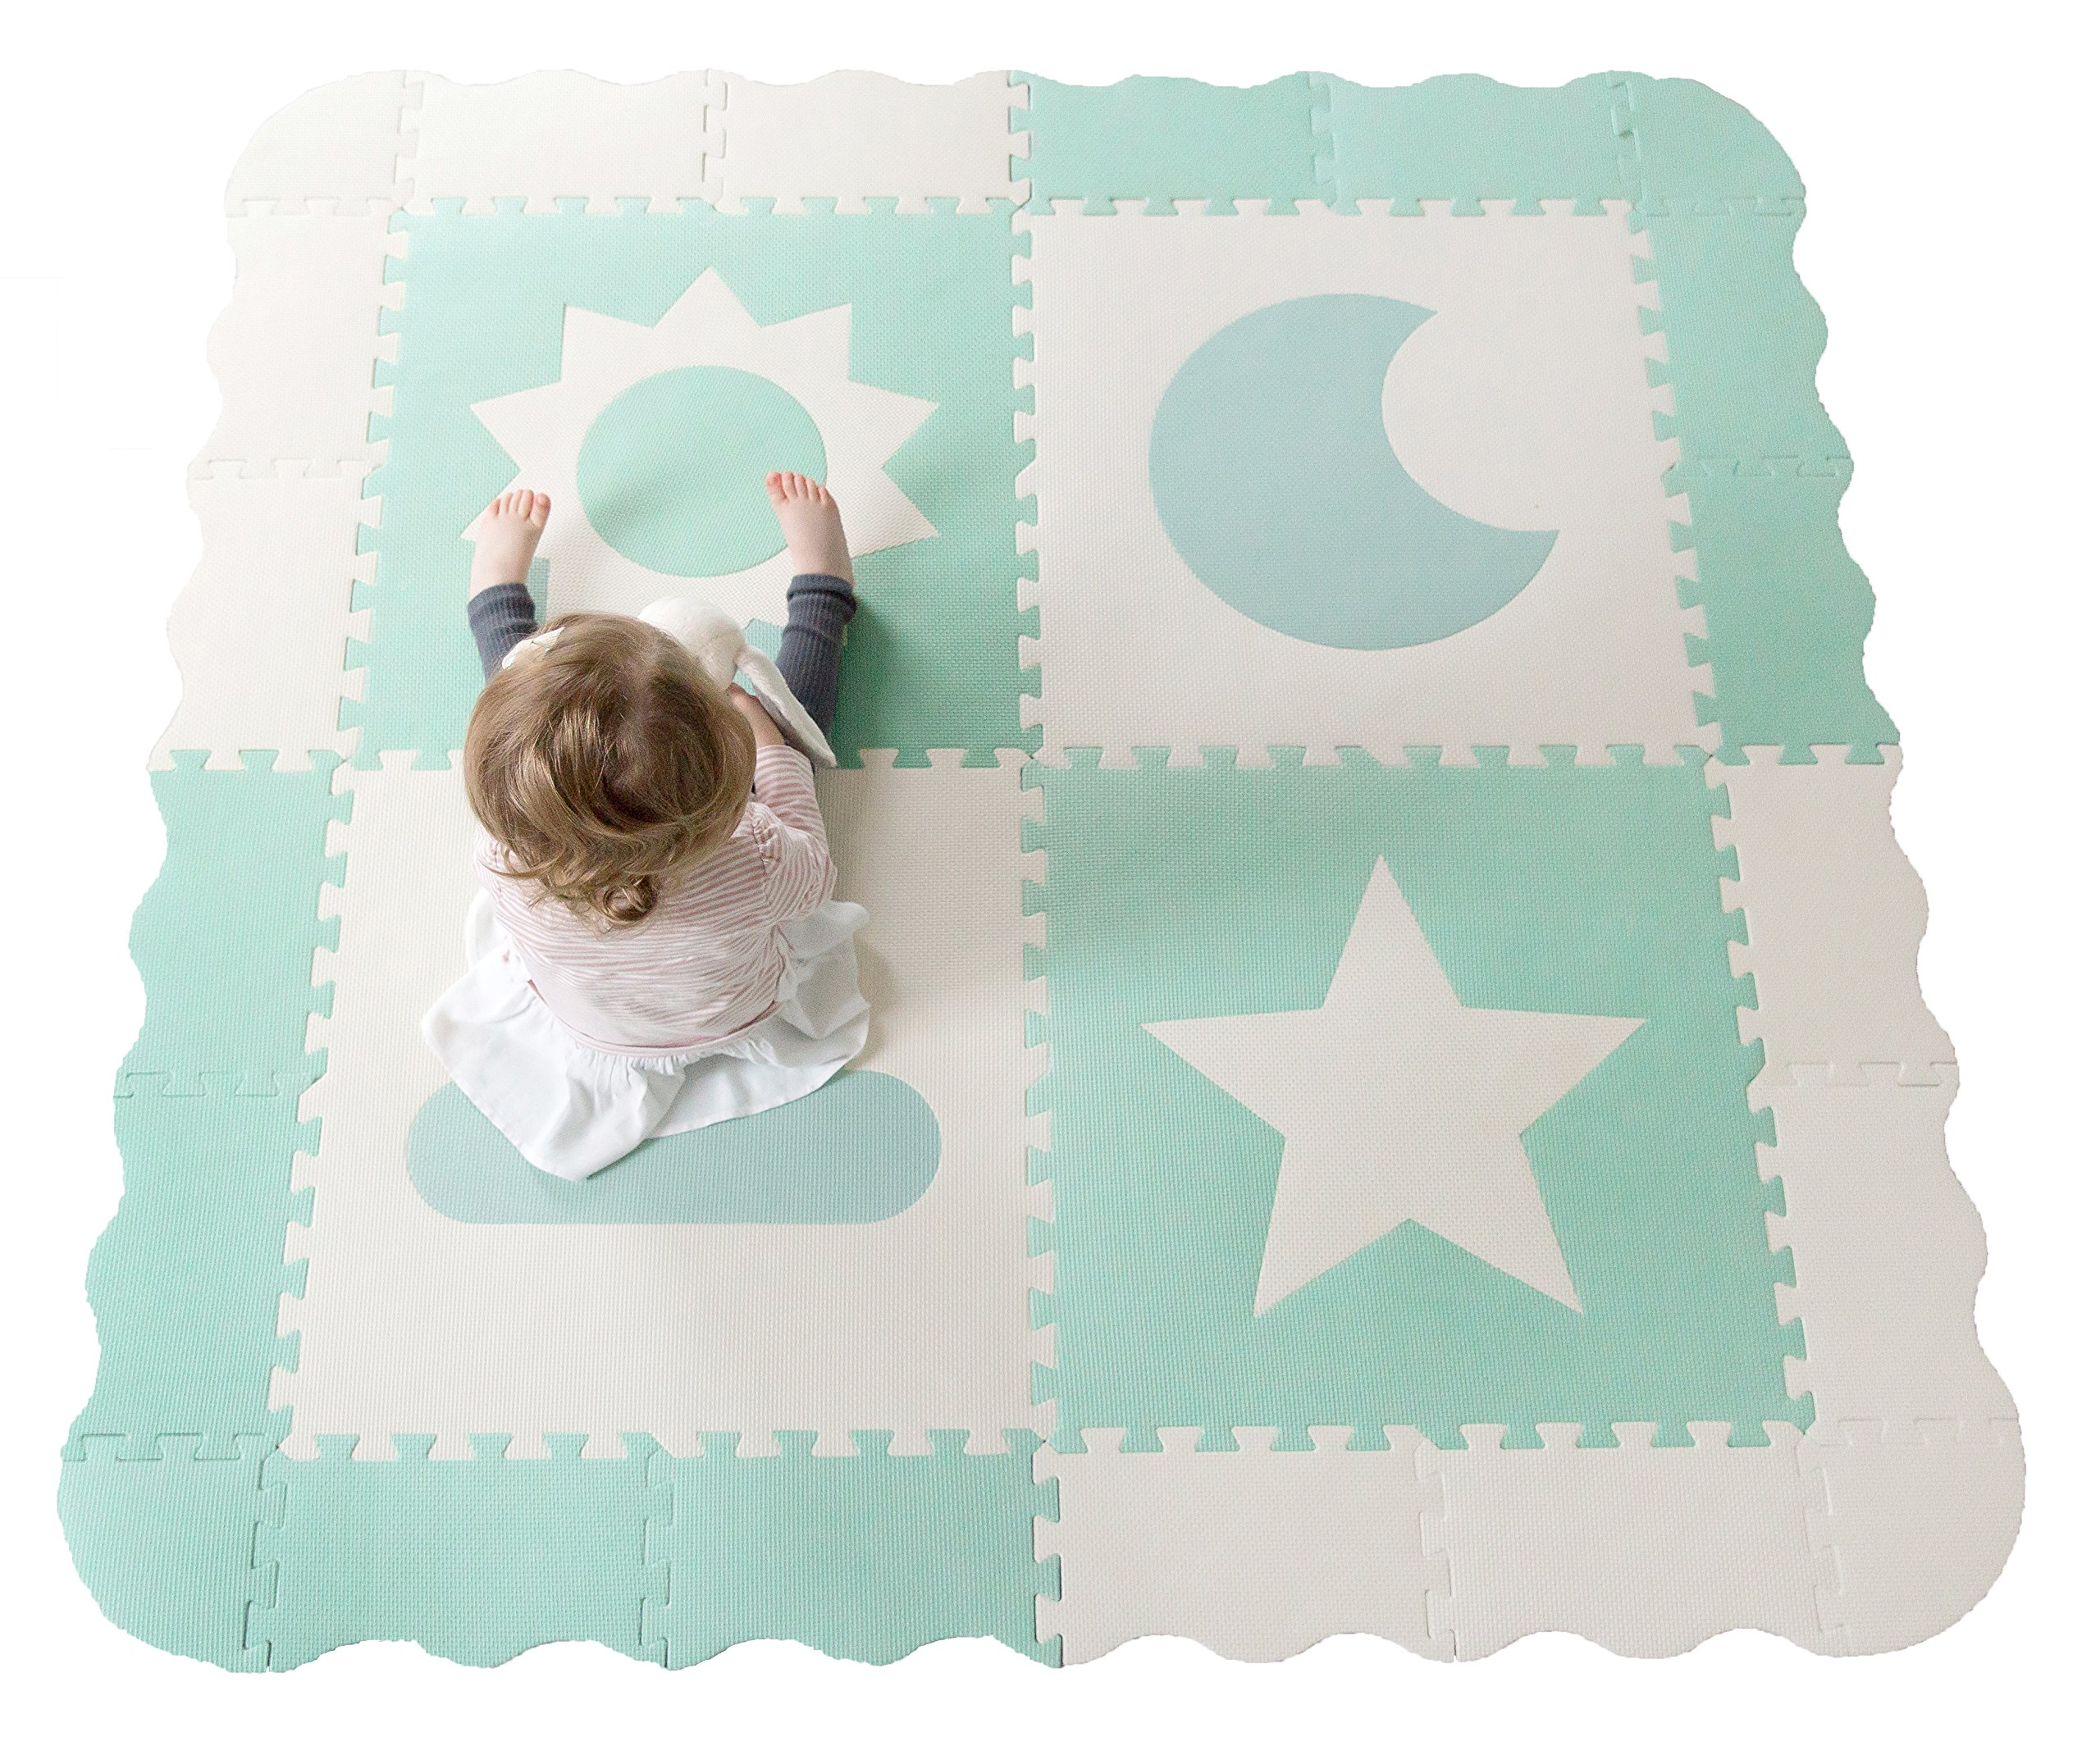 """Baby Play Mat Tiles - 61"""" x 61"""" Extra Large, Non Toxic Foam Baby Floor Mat - Teal & White Interlocking Playroom & Nursery Playmat - Safe & Protective for Infants & Toddlers"""